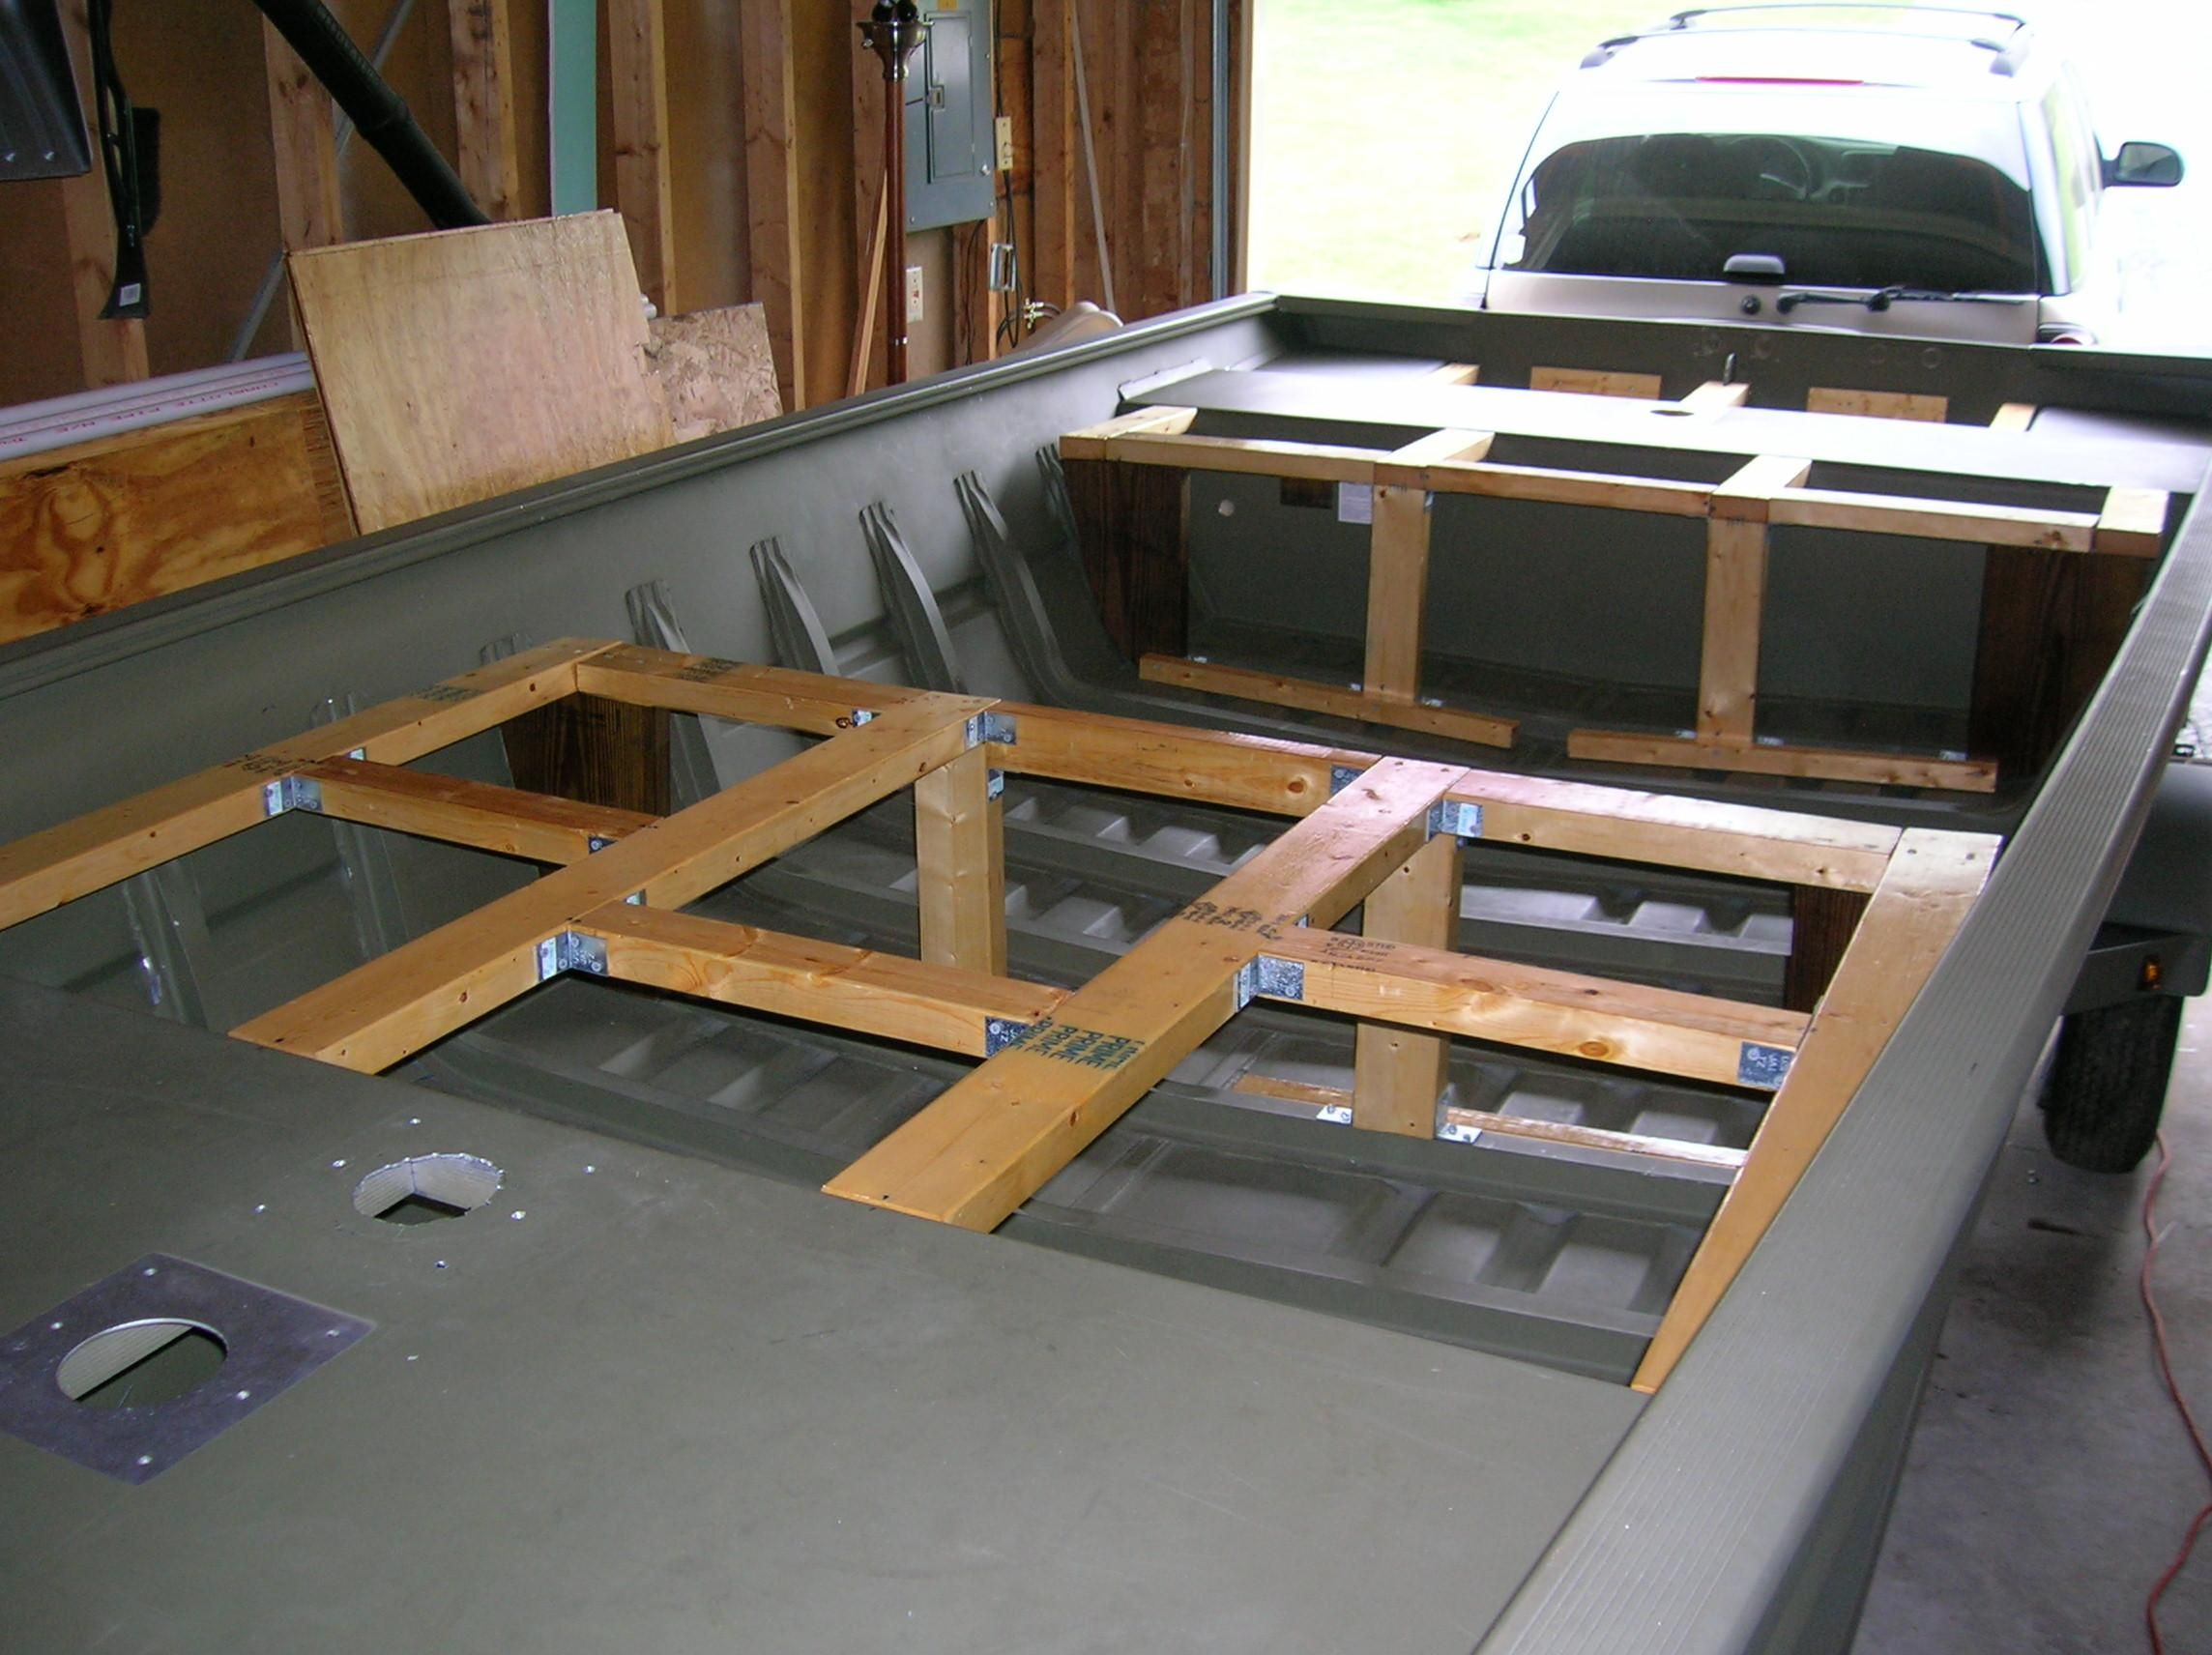 Jon Boat Modification - Support braces (whole boat) - Slideshow View